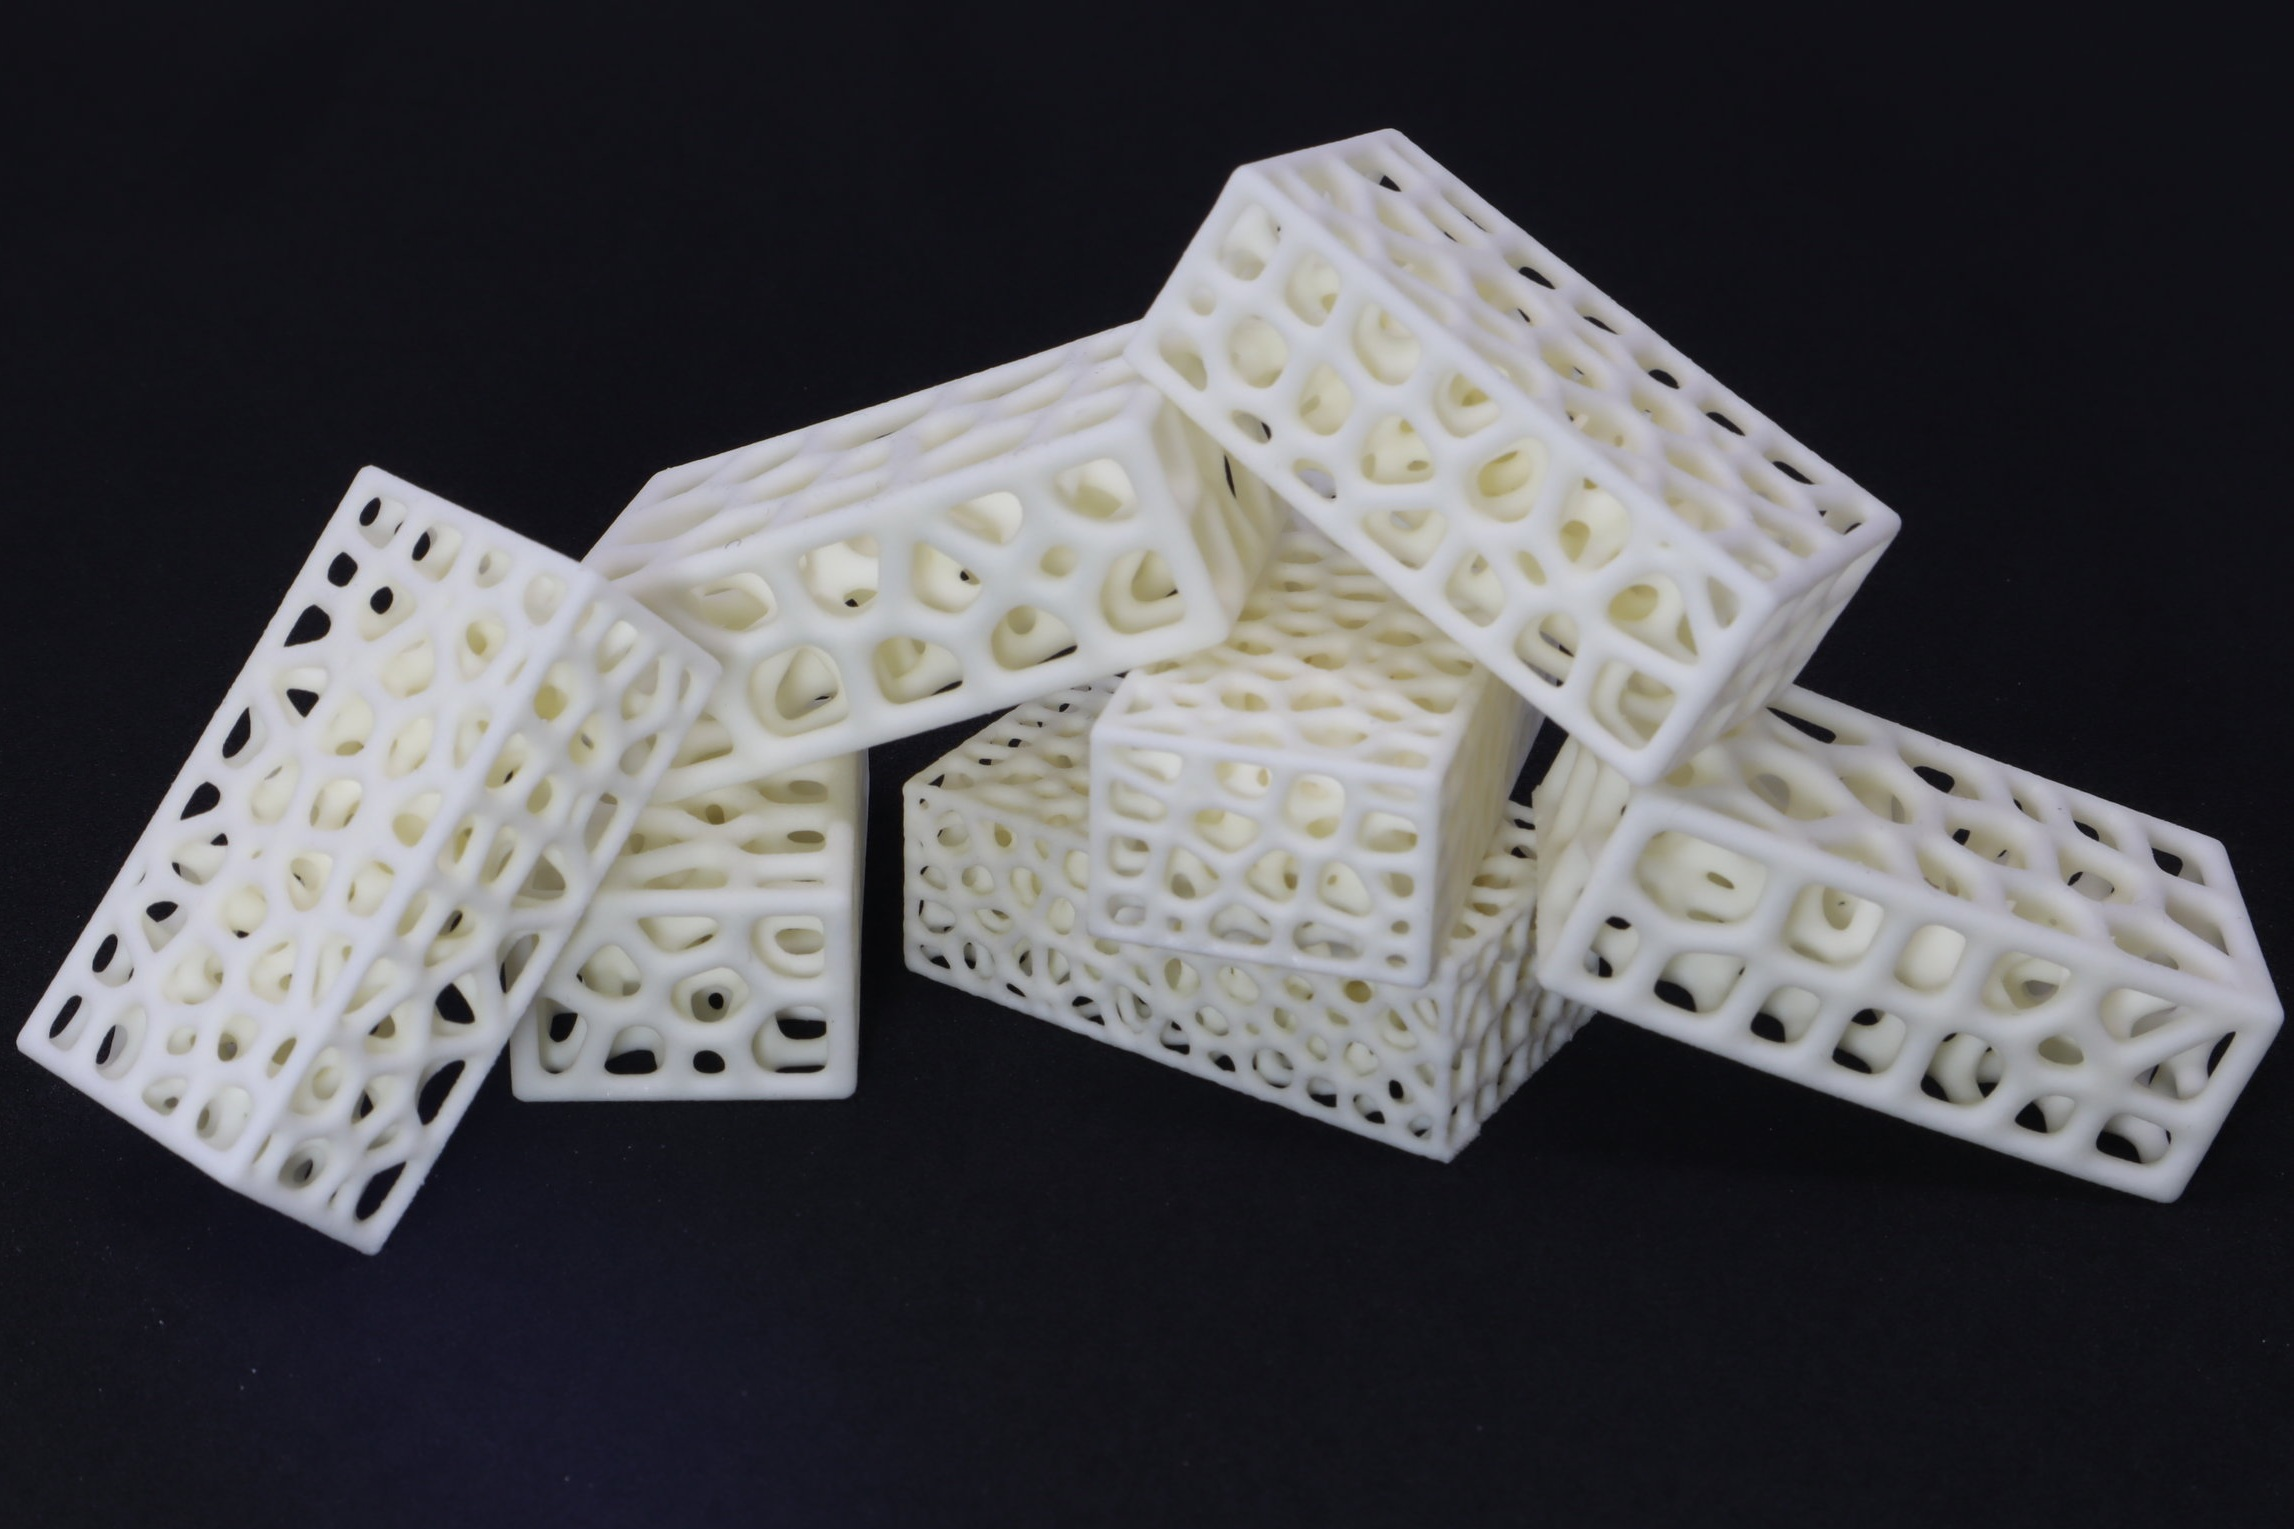 3D print parts you could never make before - Machine vision enables intricate part geometries in a reliable, high-throughput printing system